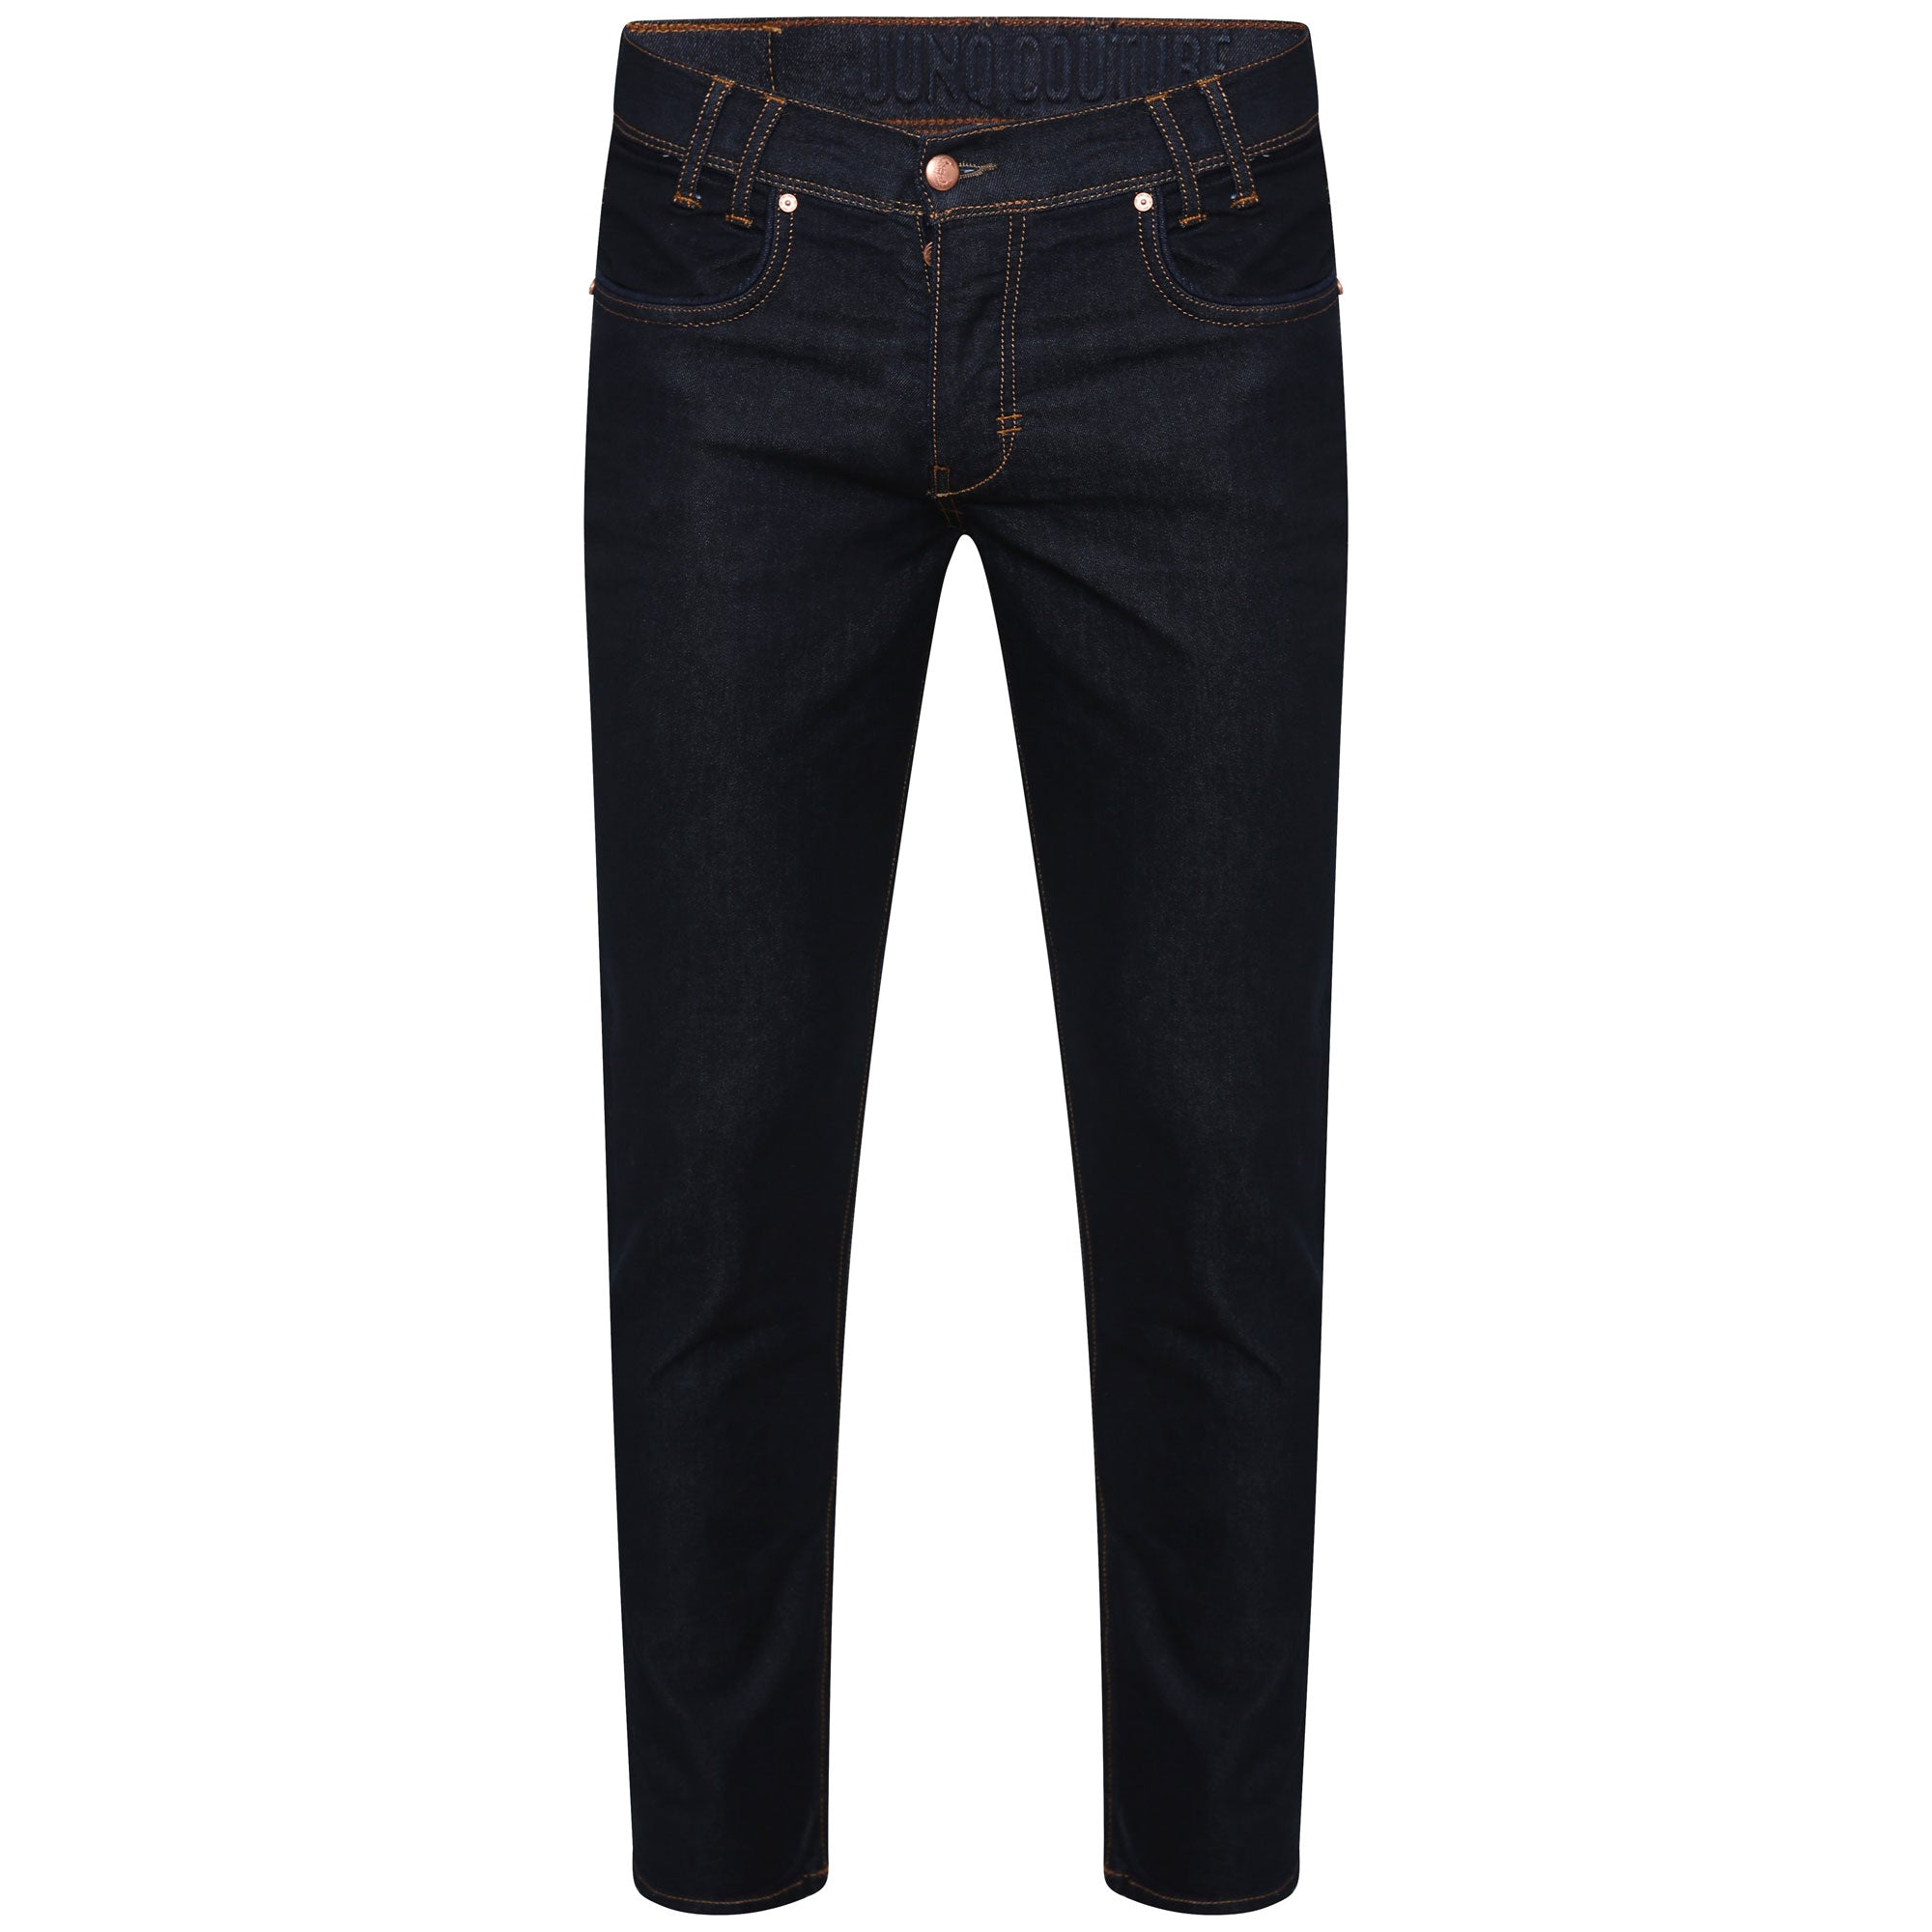 Style : Daree 102 Slim Fit Dark Blue Jeans - Junq Couture